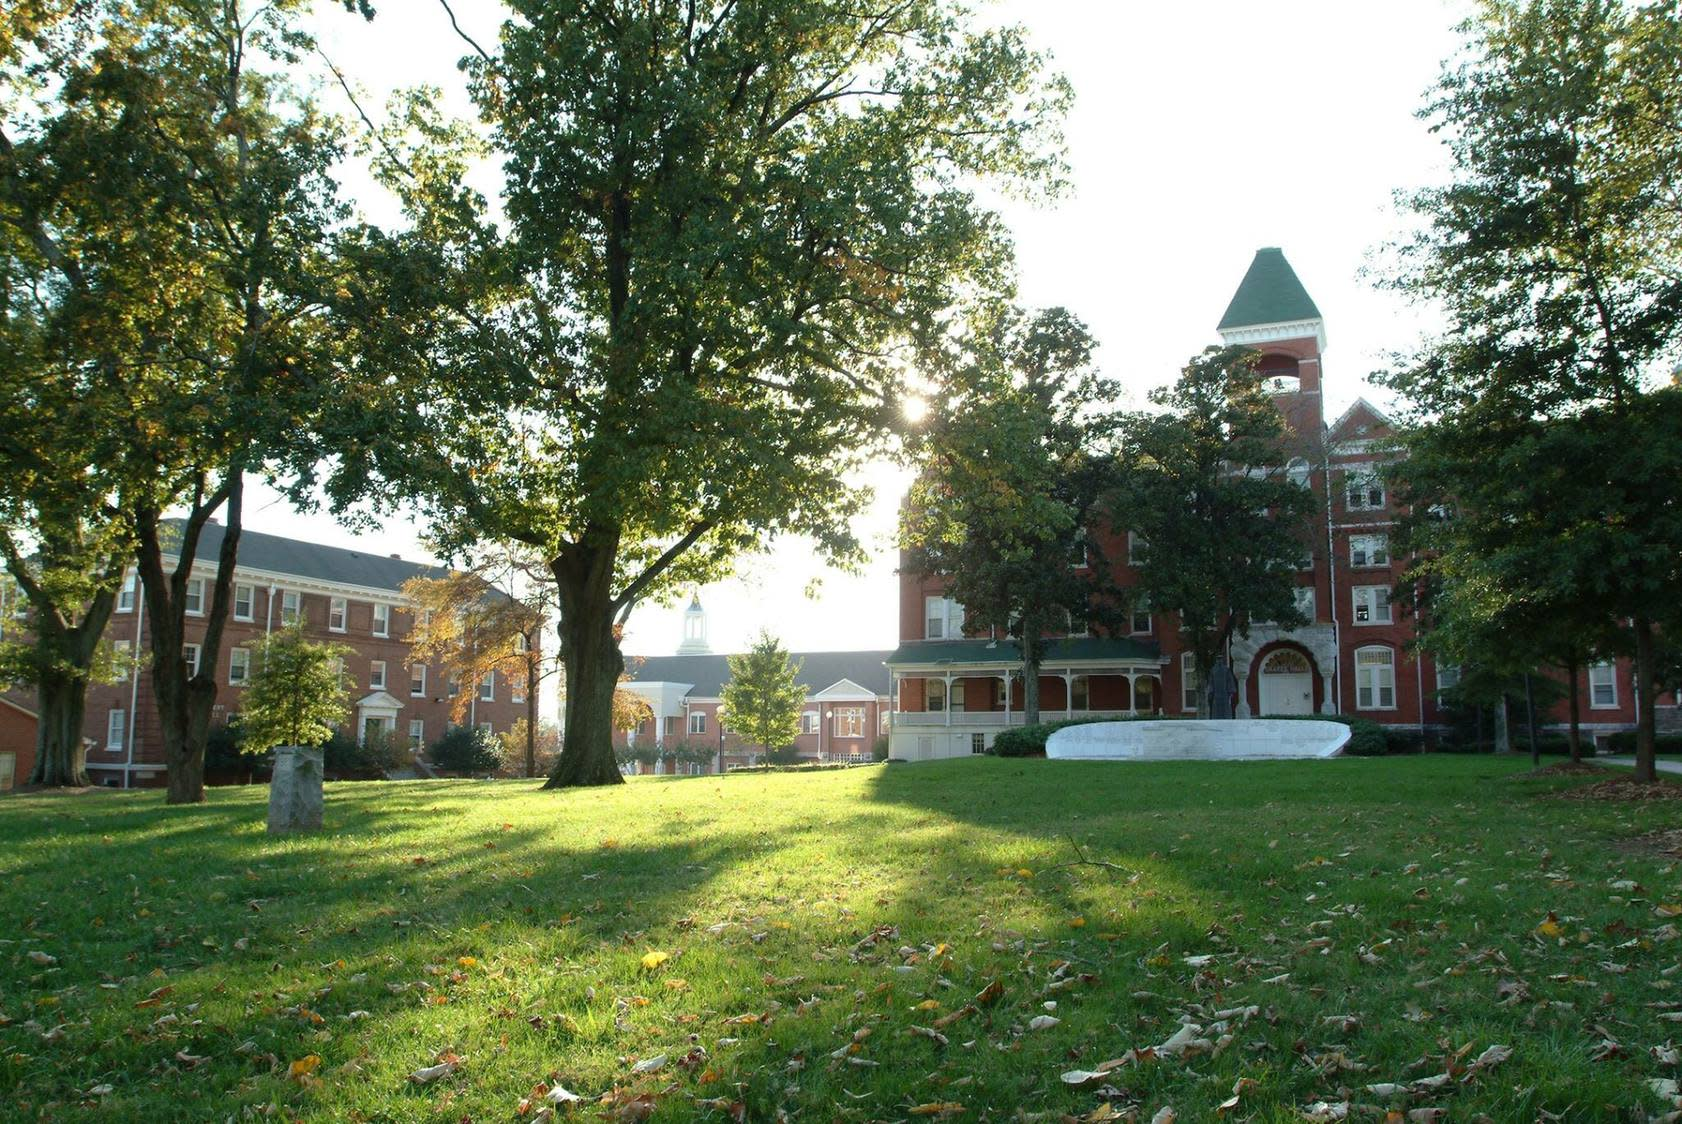 All-male Morehouse College will now admit transgender men, sparking backlash over new policy